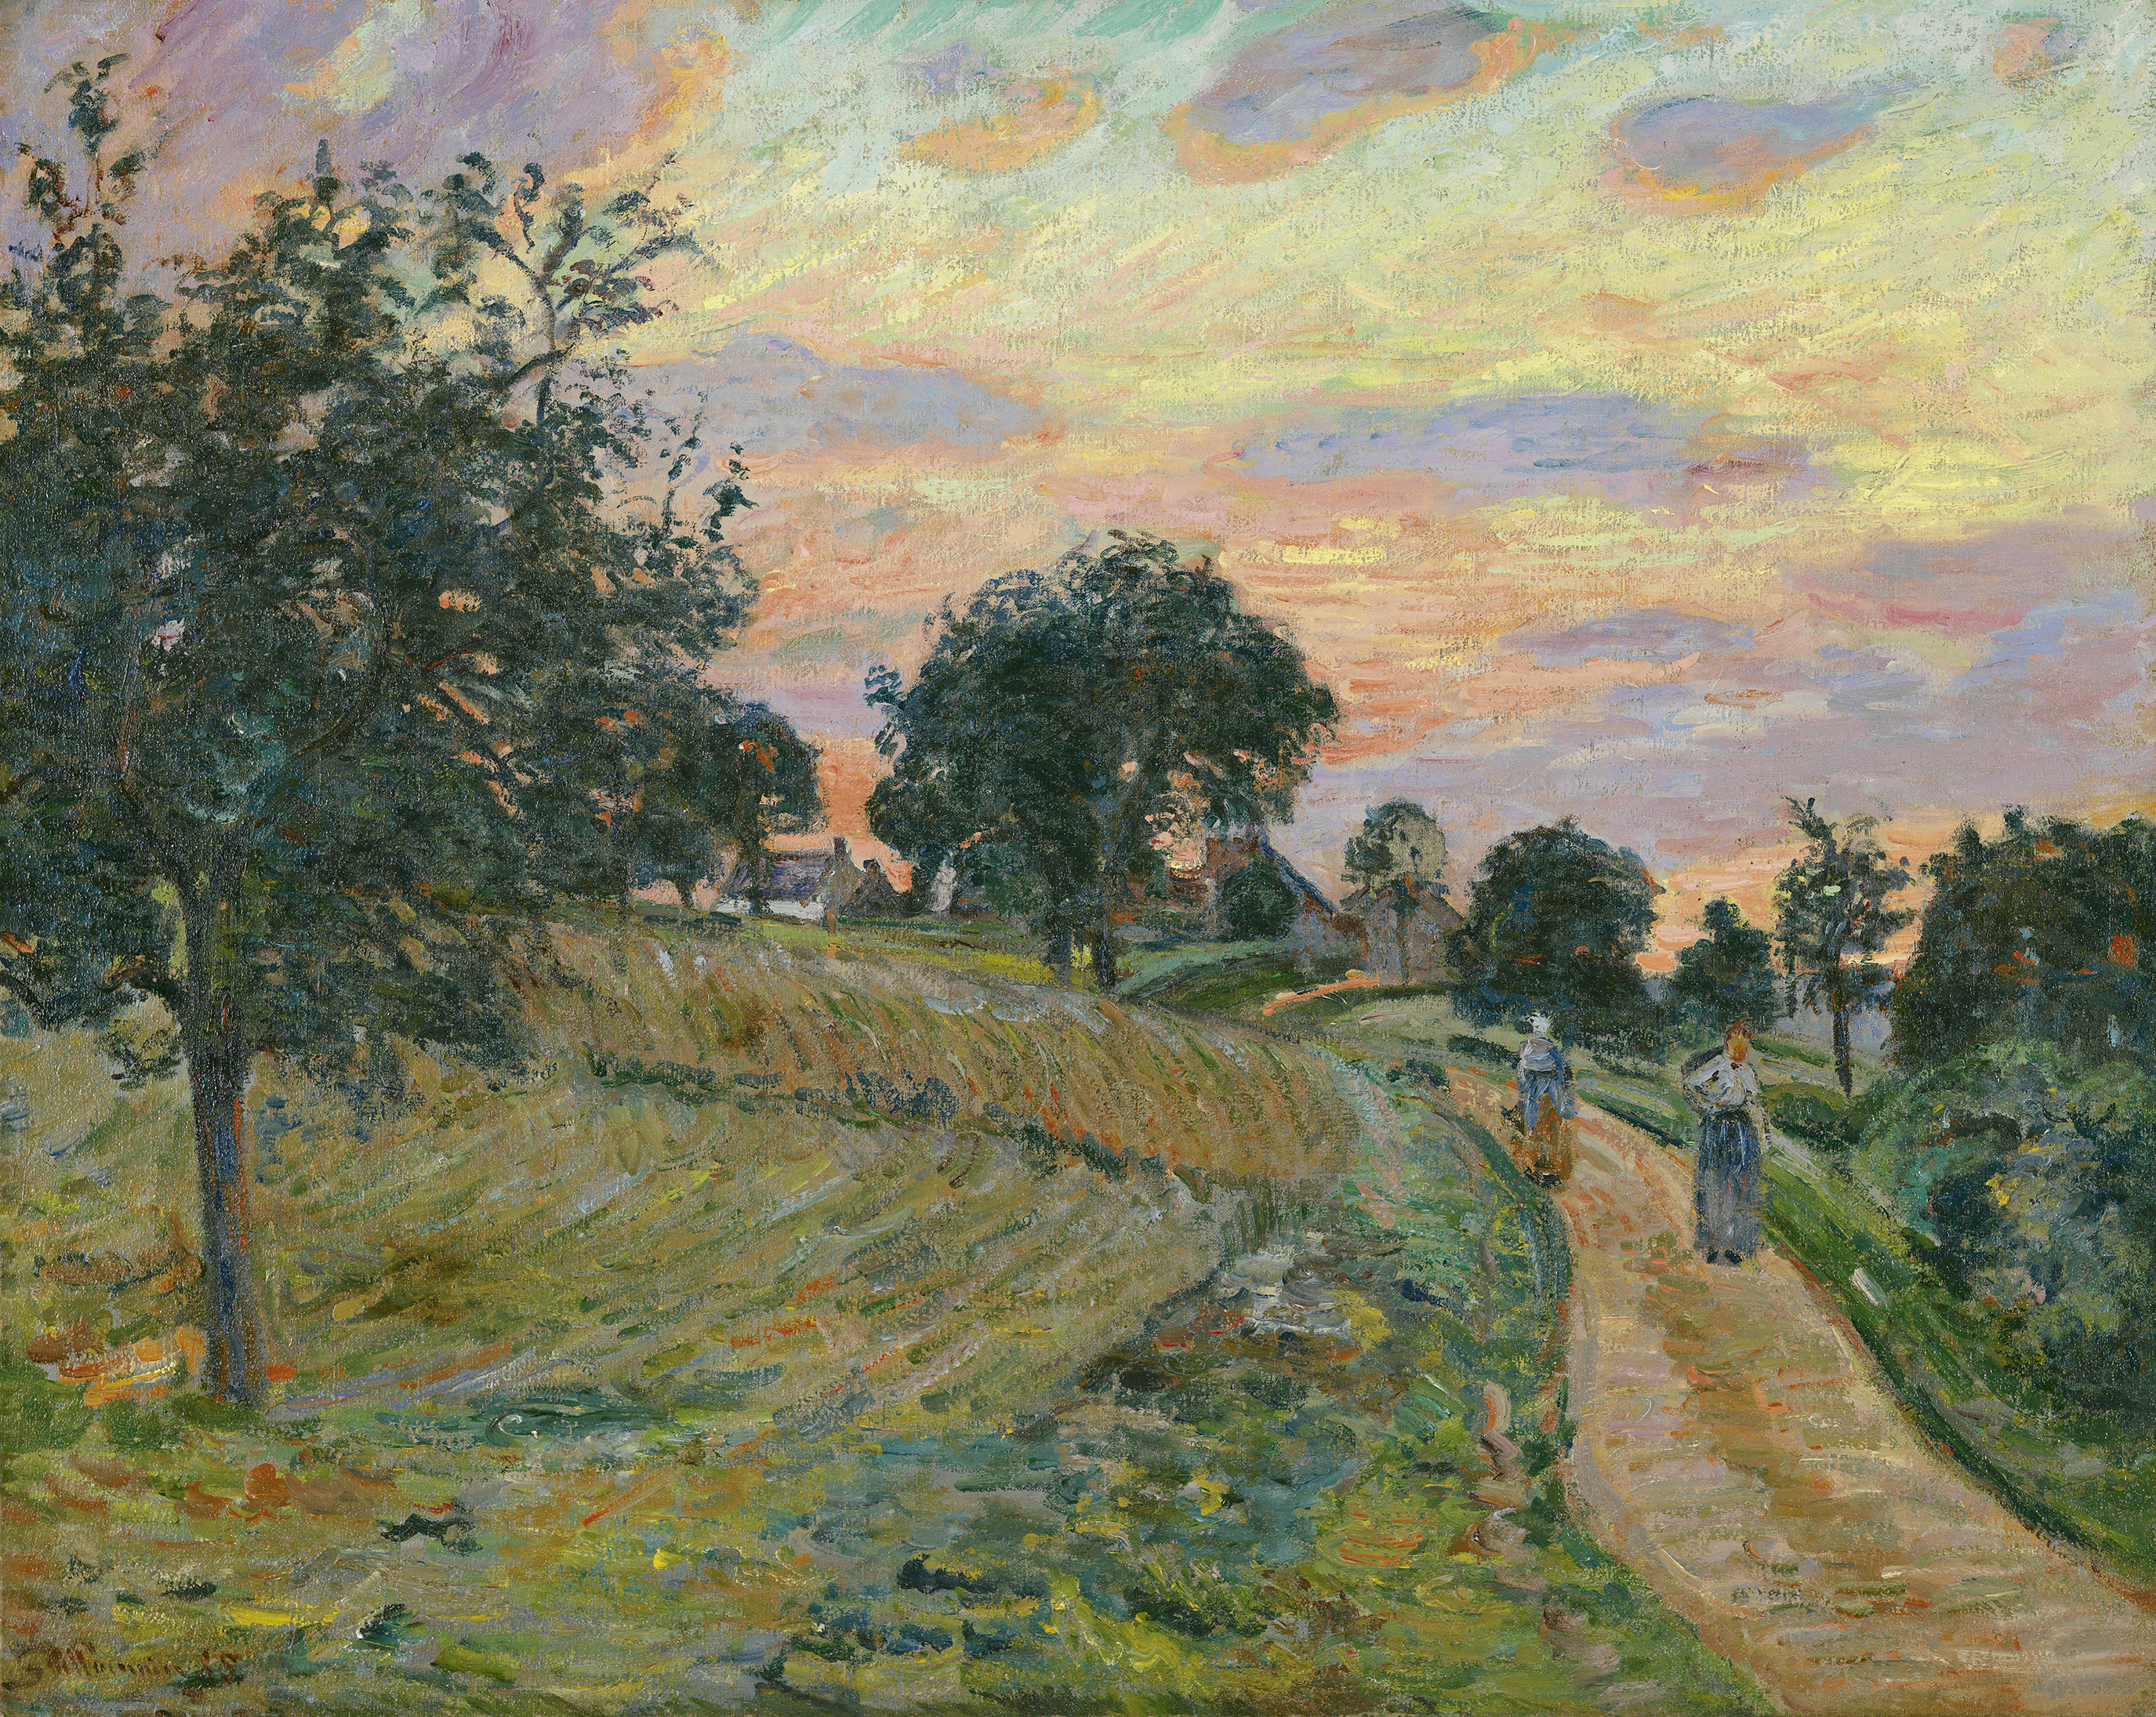 https://imagenes.museothyssen.org/sites/default/files/imagen/obras/descarga/CTB.1988.18_camino-damiette.jpg?_ga=2.187196072.1401341339.1552918007-1134521341.1552310646